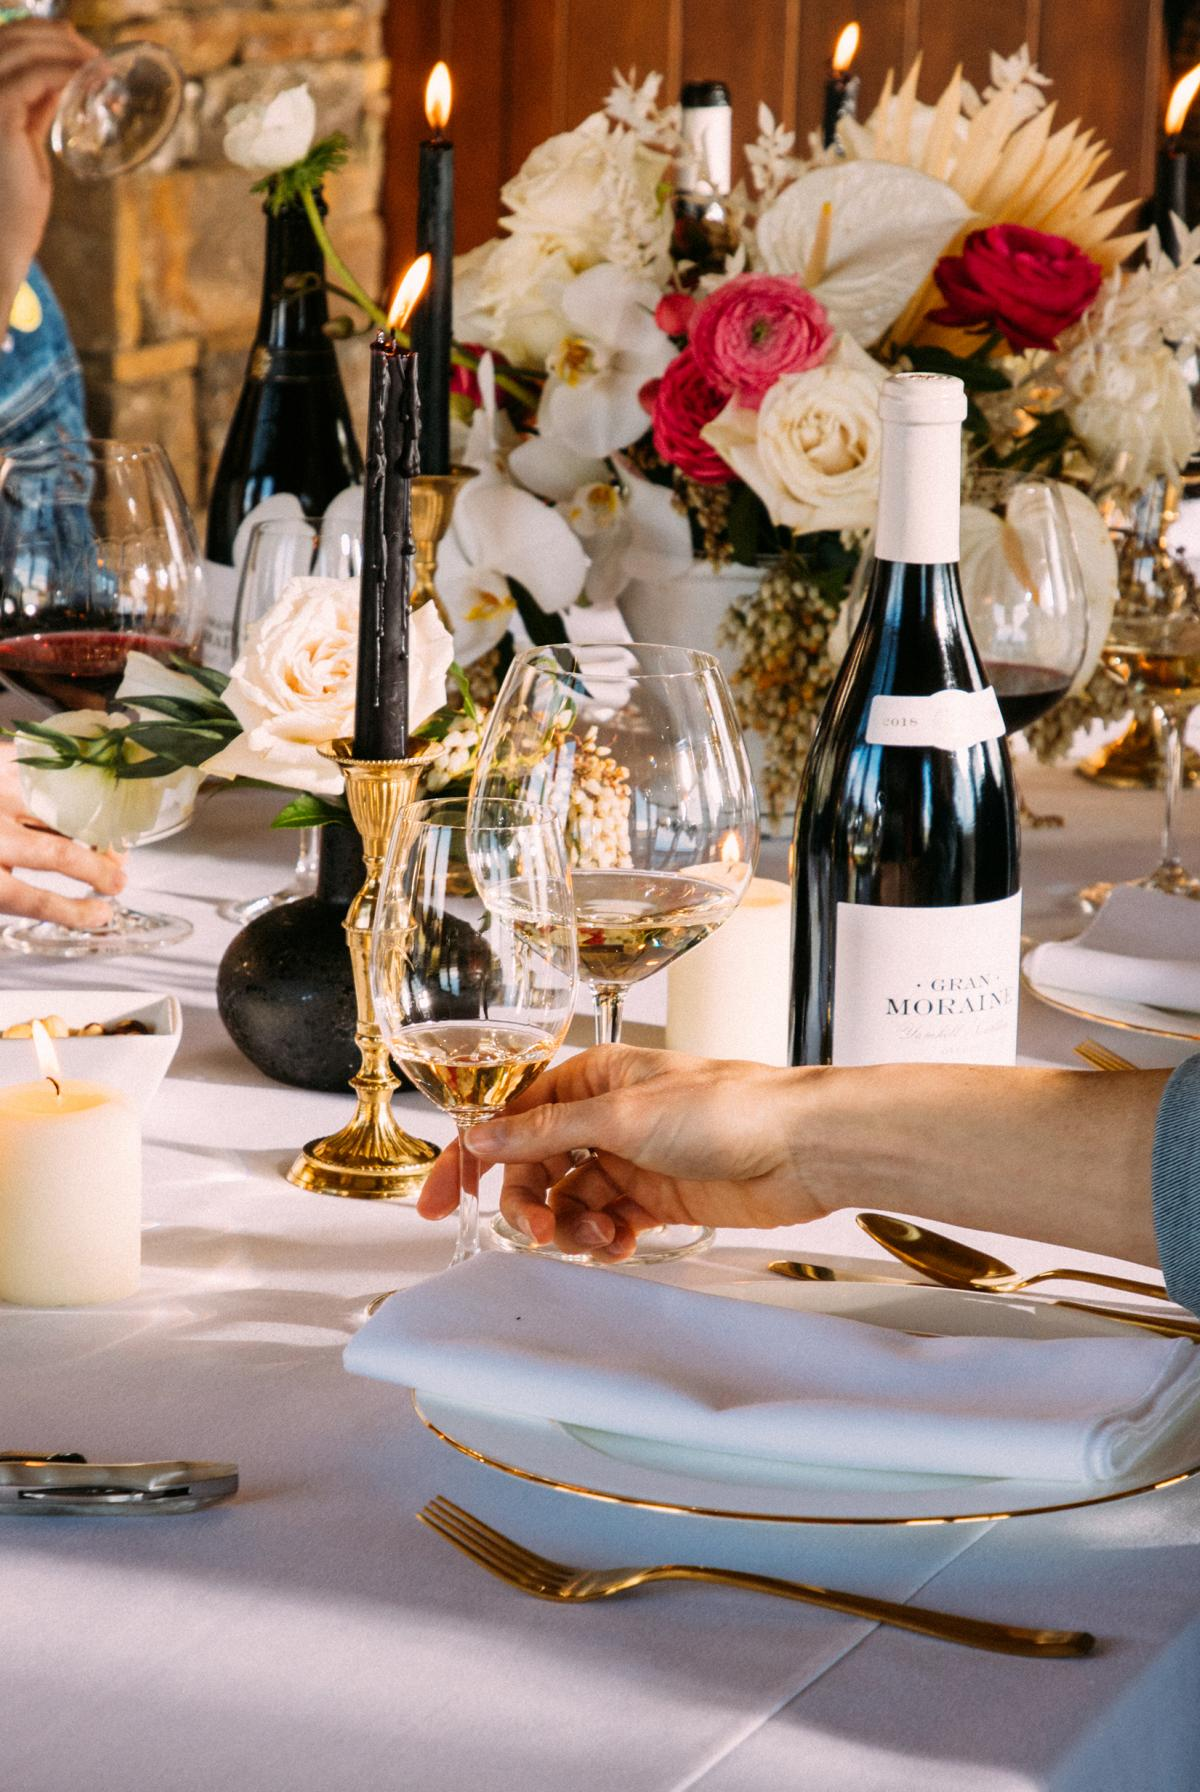 Table set with candles and Gran Moraine wines